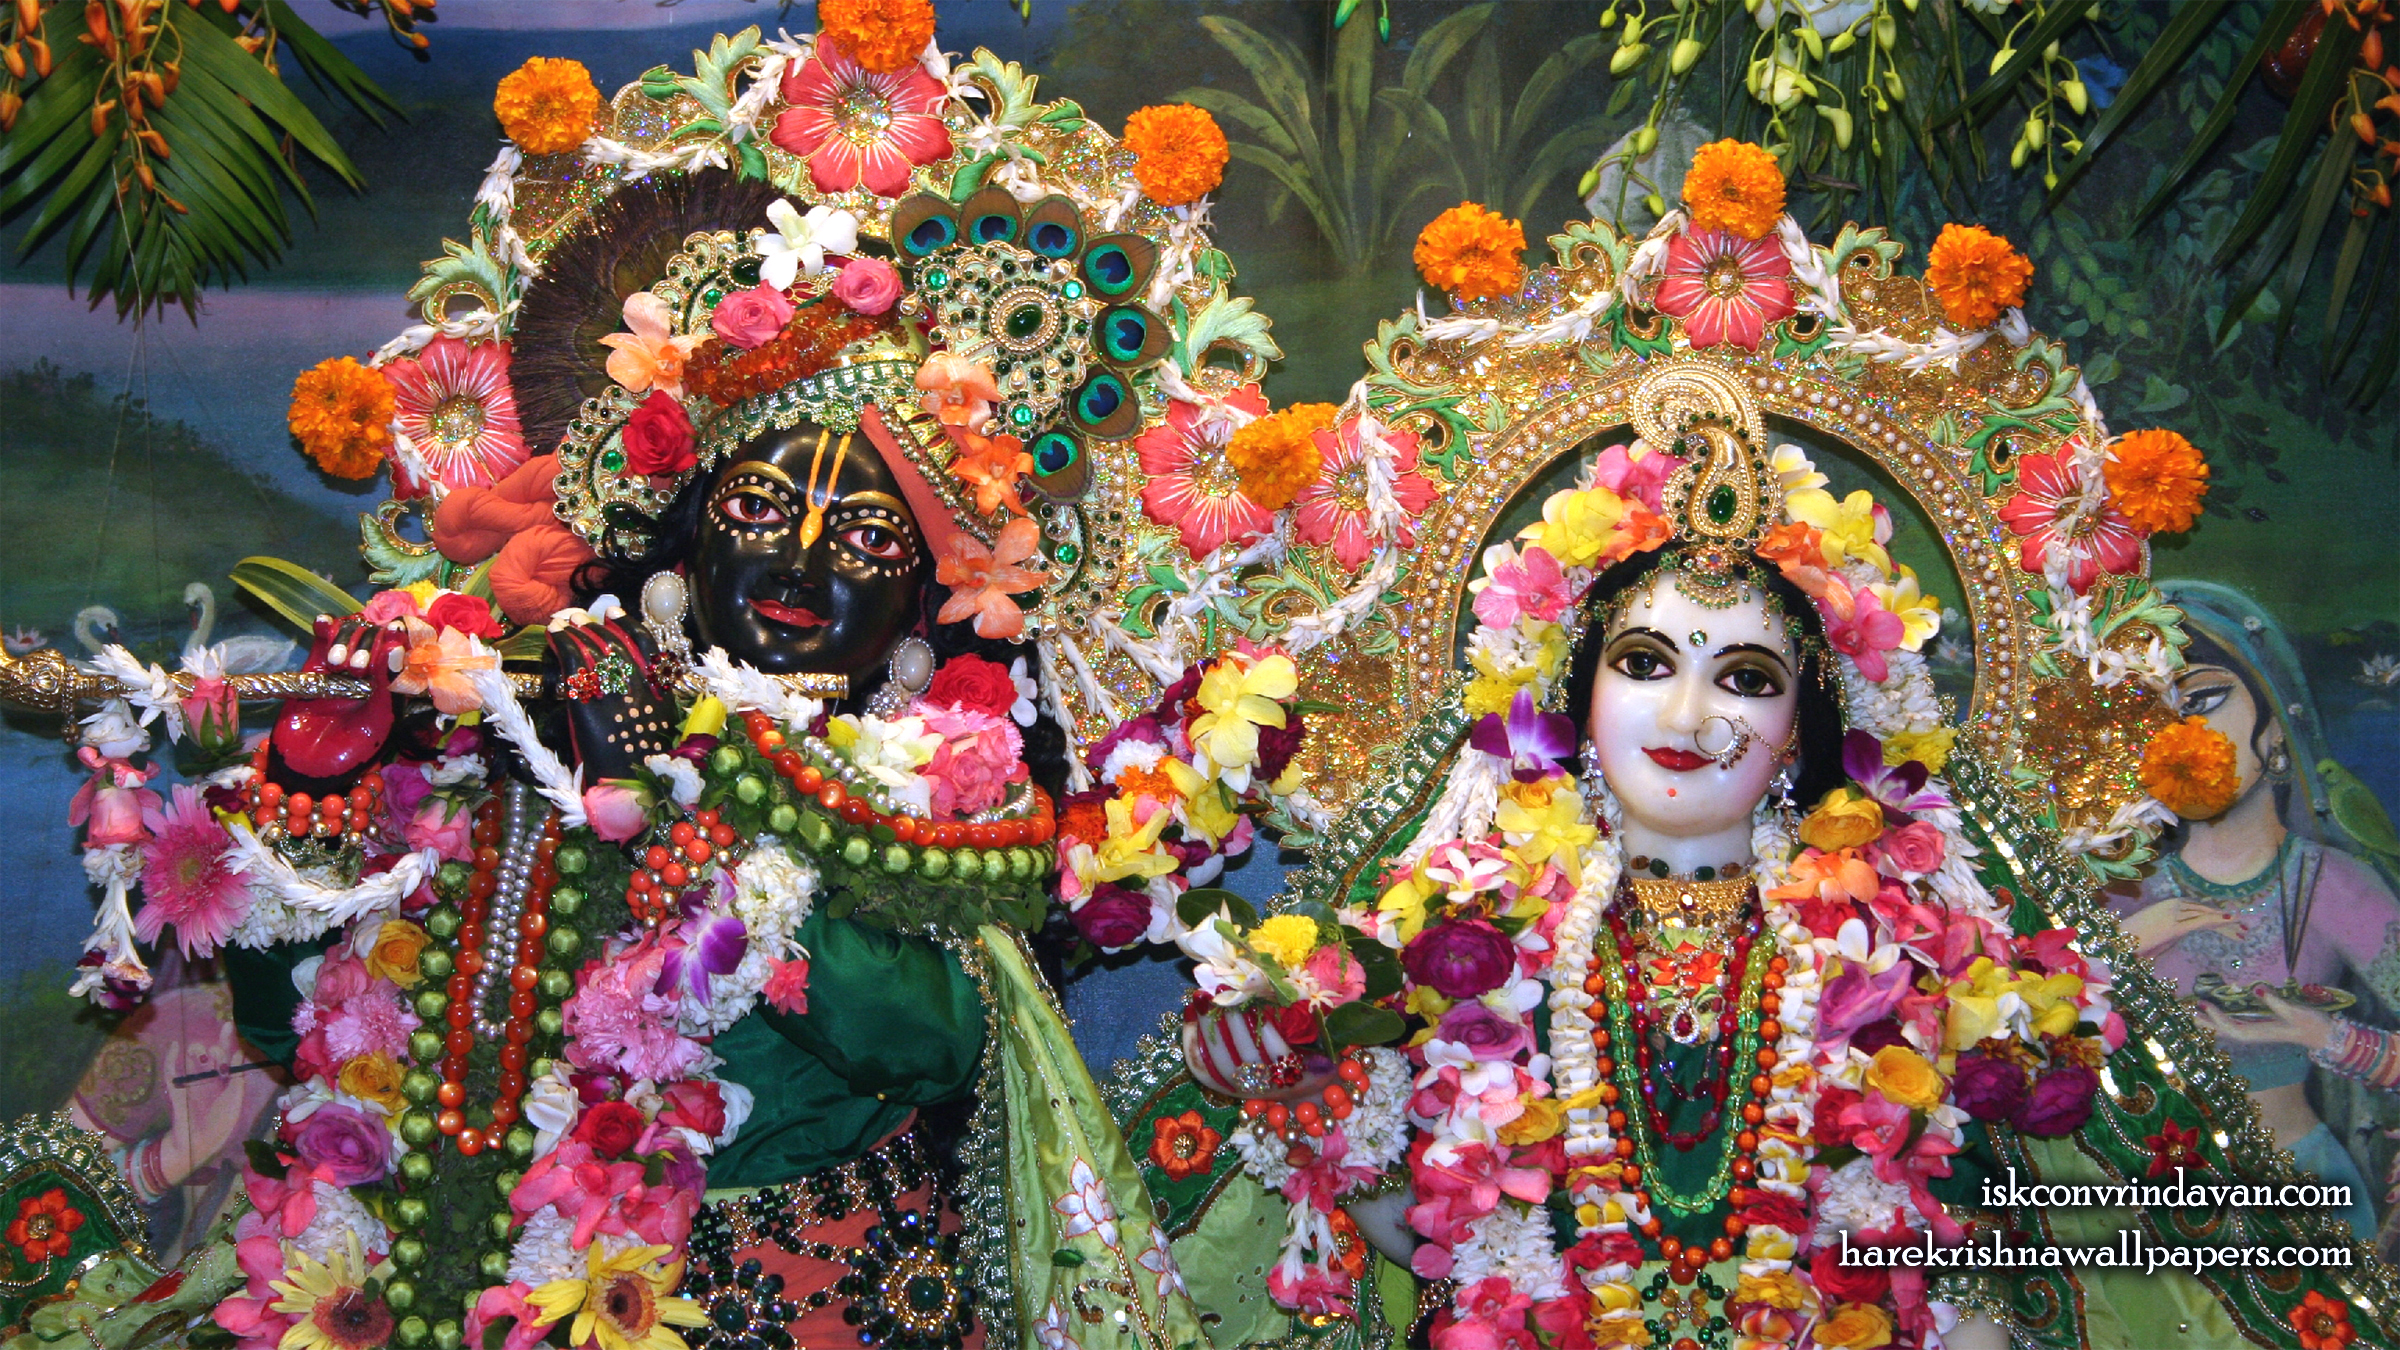 Sri Sri Radha Shyamsundar Close up Wallpaper (002) Size 2400x1350 Download